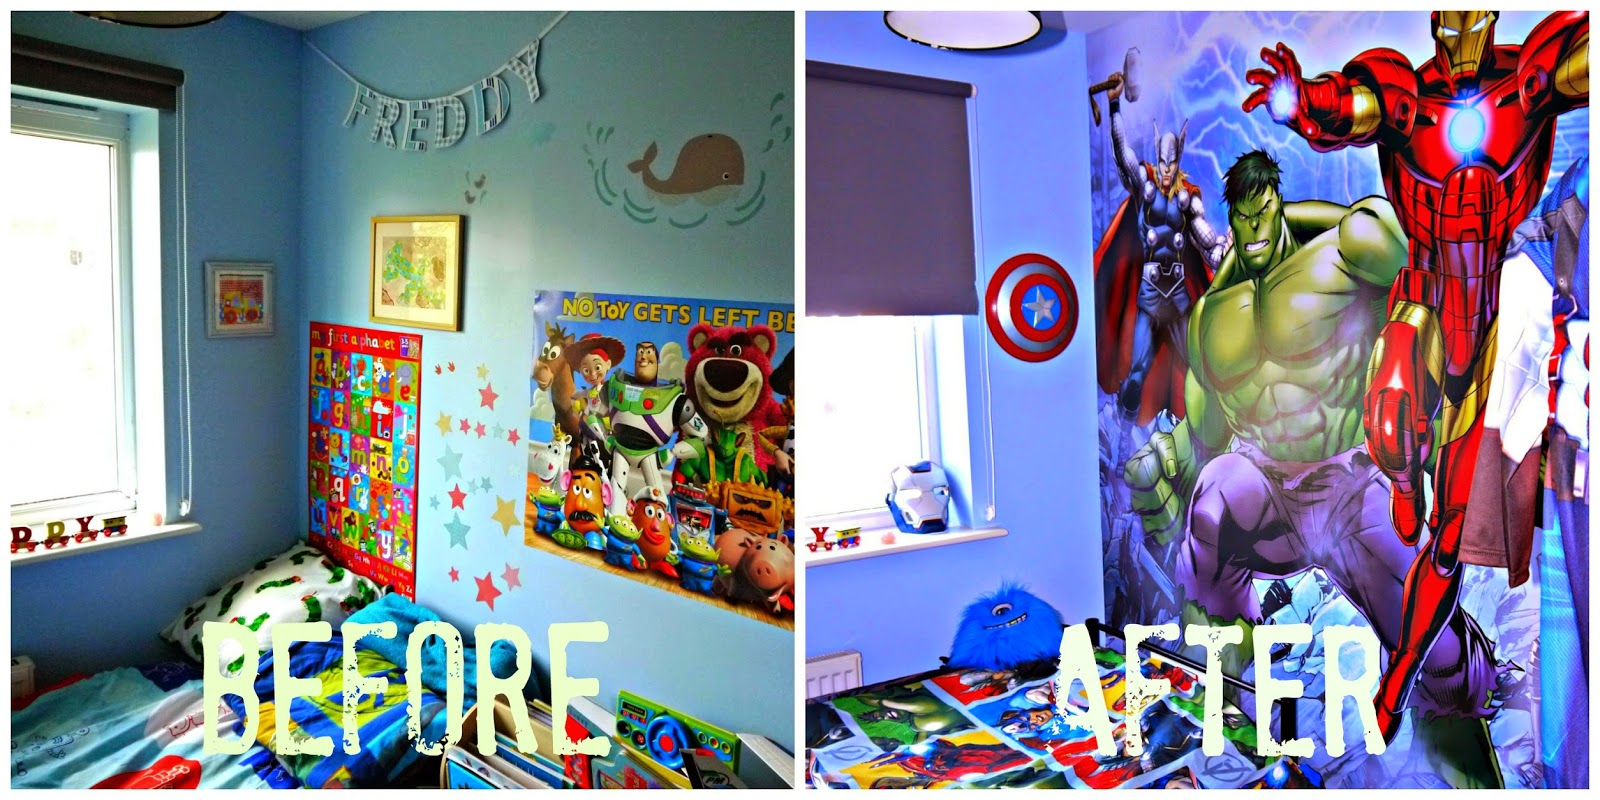 Inside the Wendy House: Freddy's Avenger's Bedroom